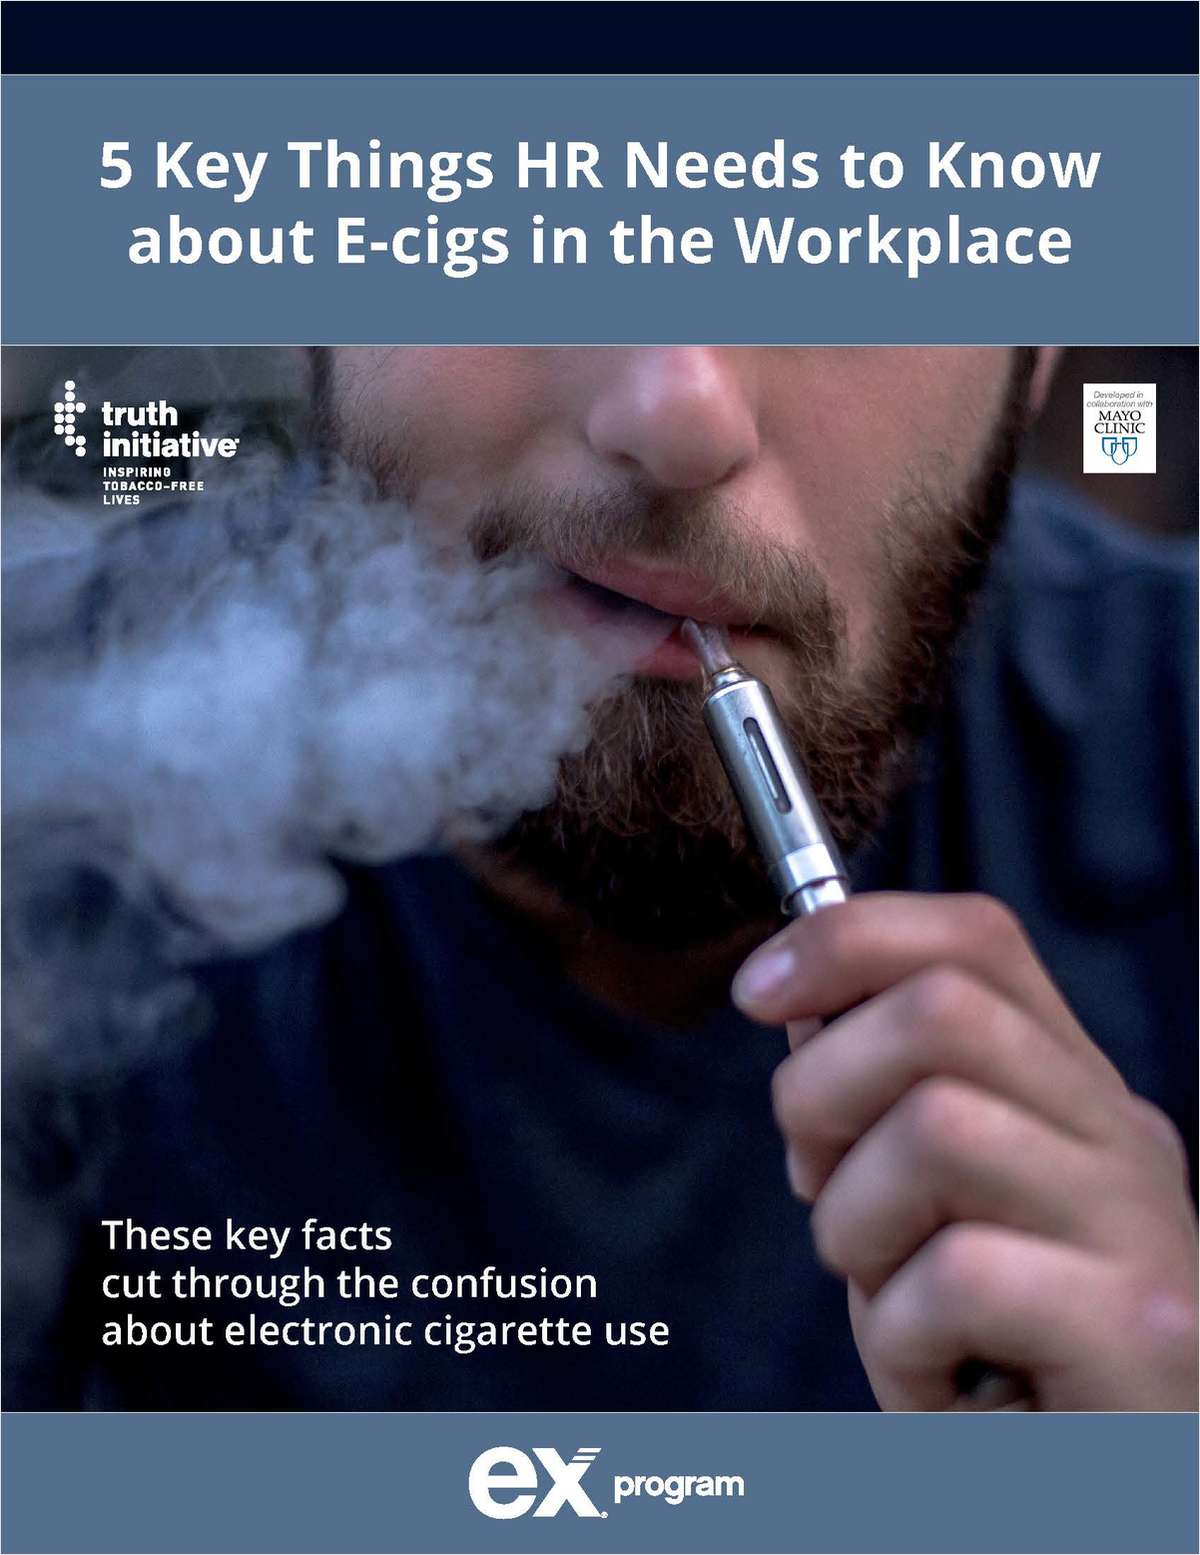 5 Things Employers Need to Know Now about E-cigarettes